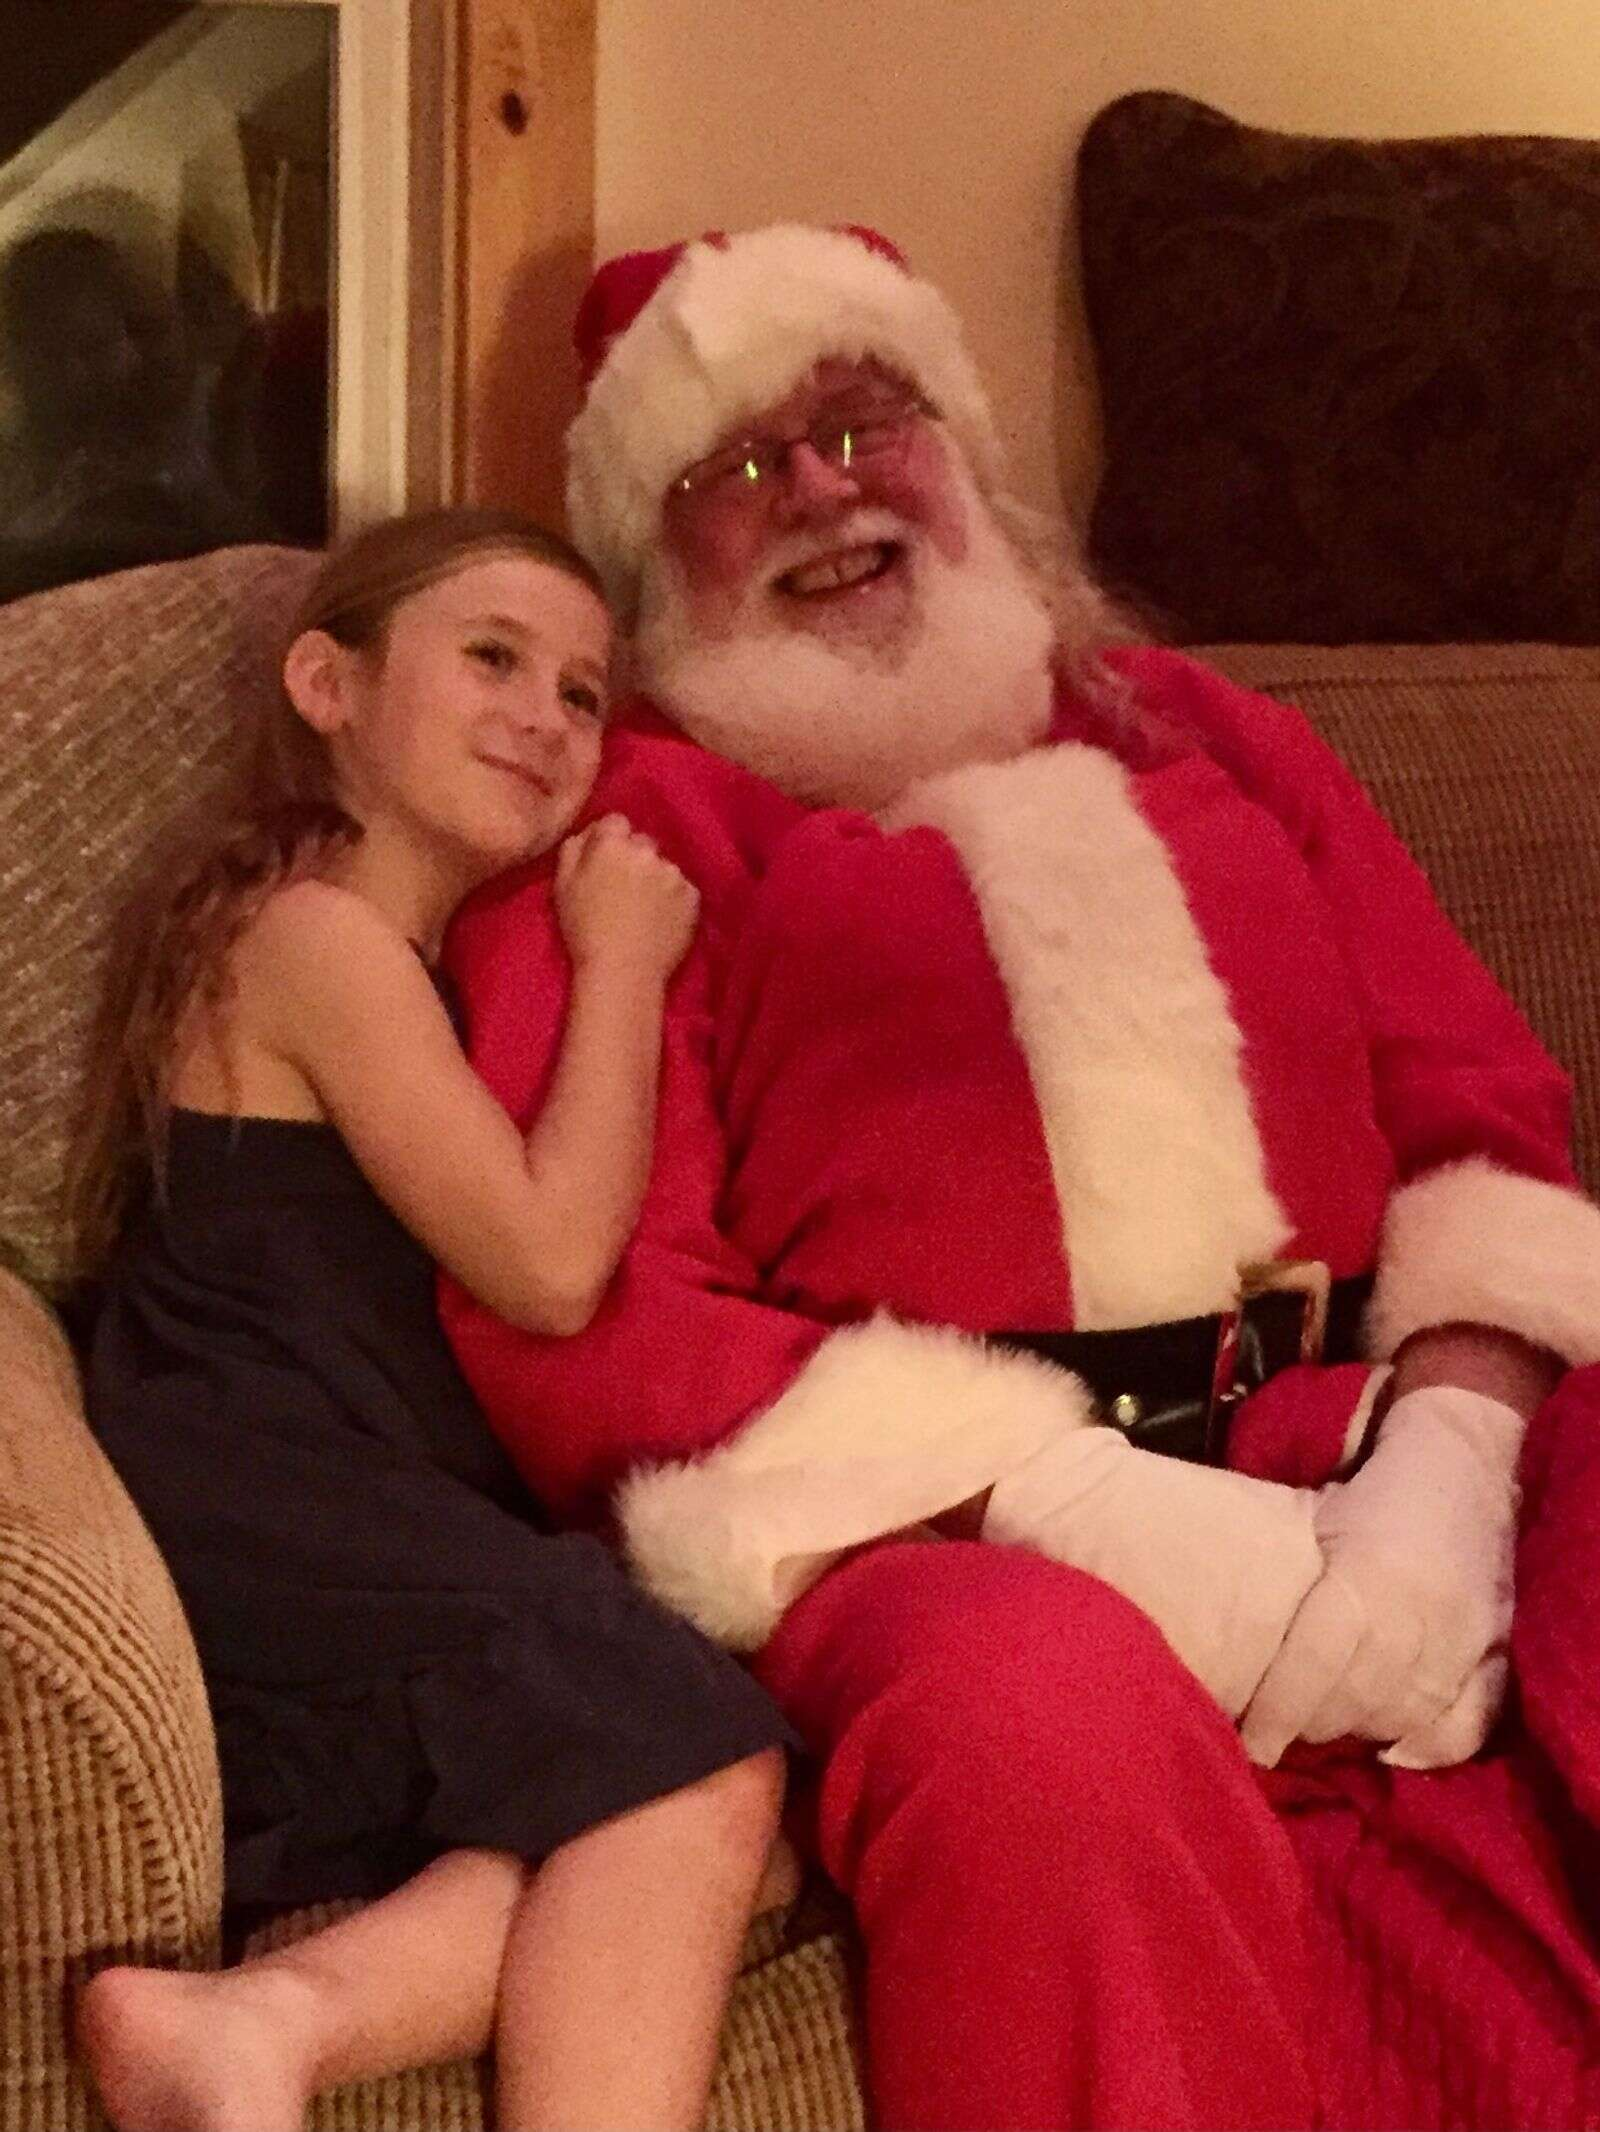 Favorite Holiday photo, Kayley and Santa. | Submitted by Kate Heuer